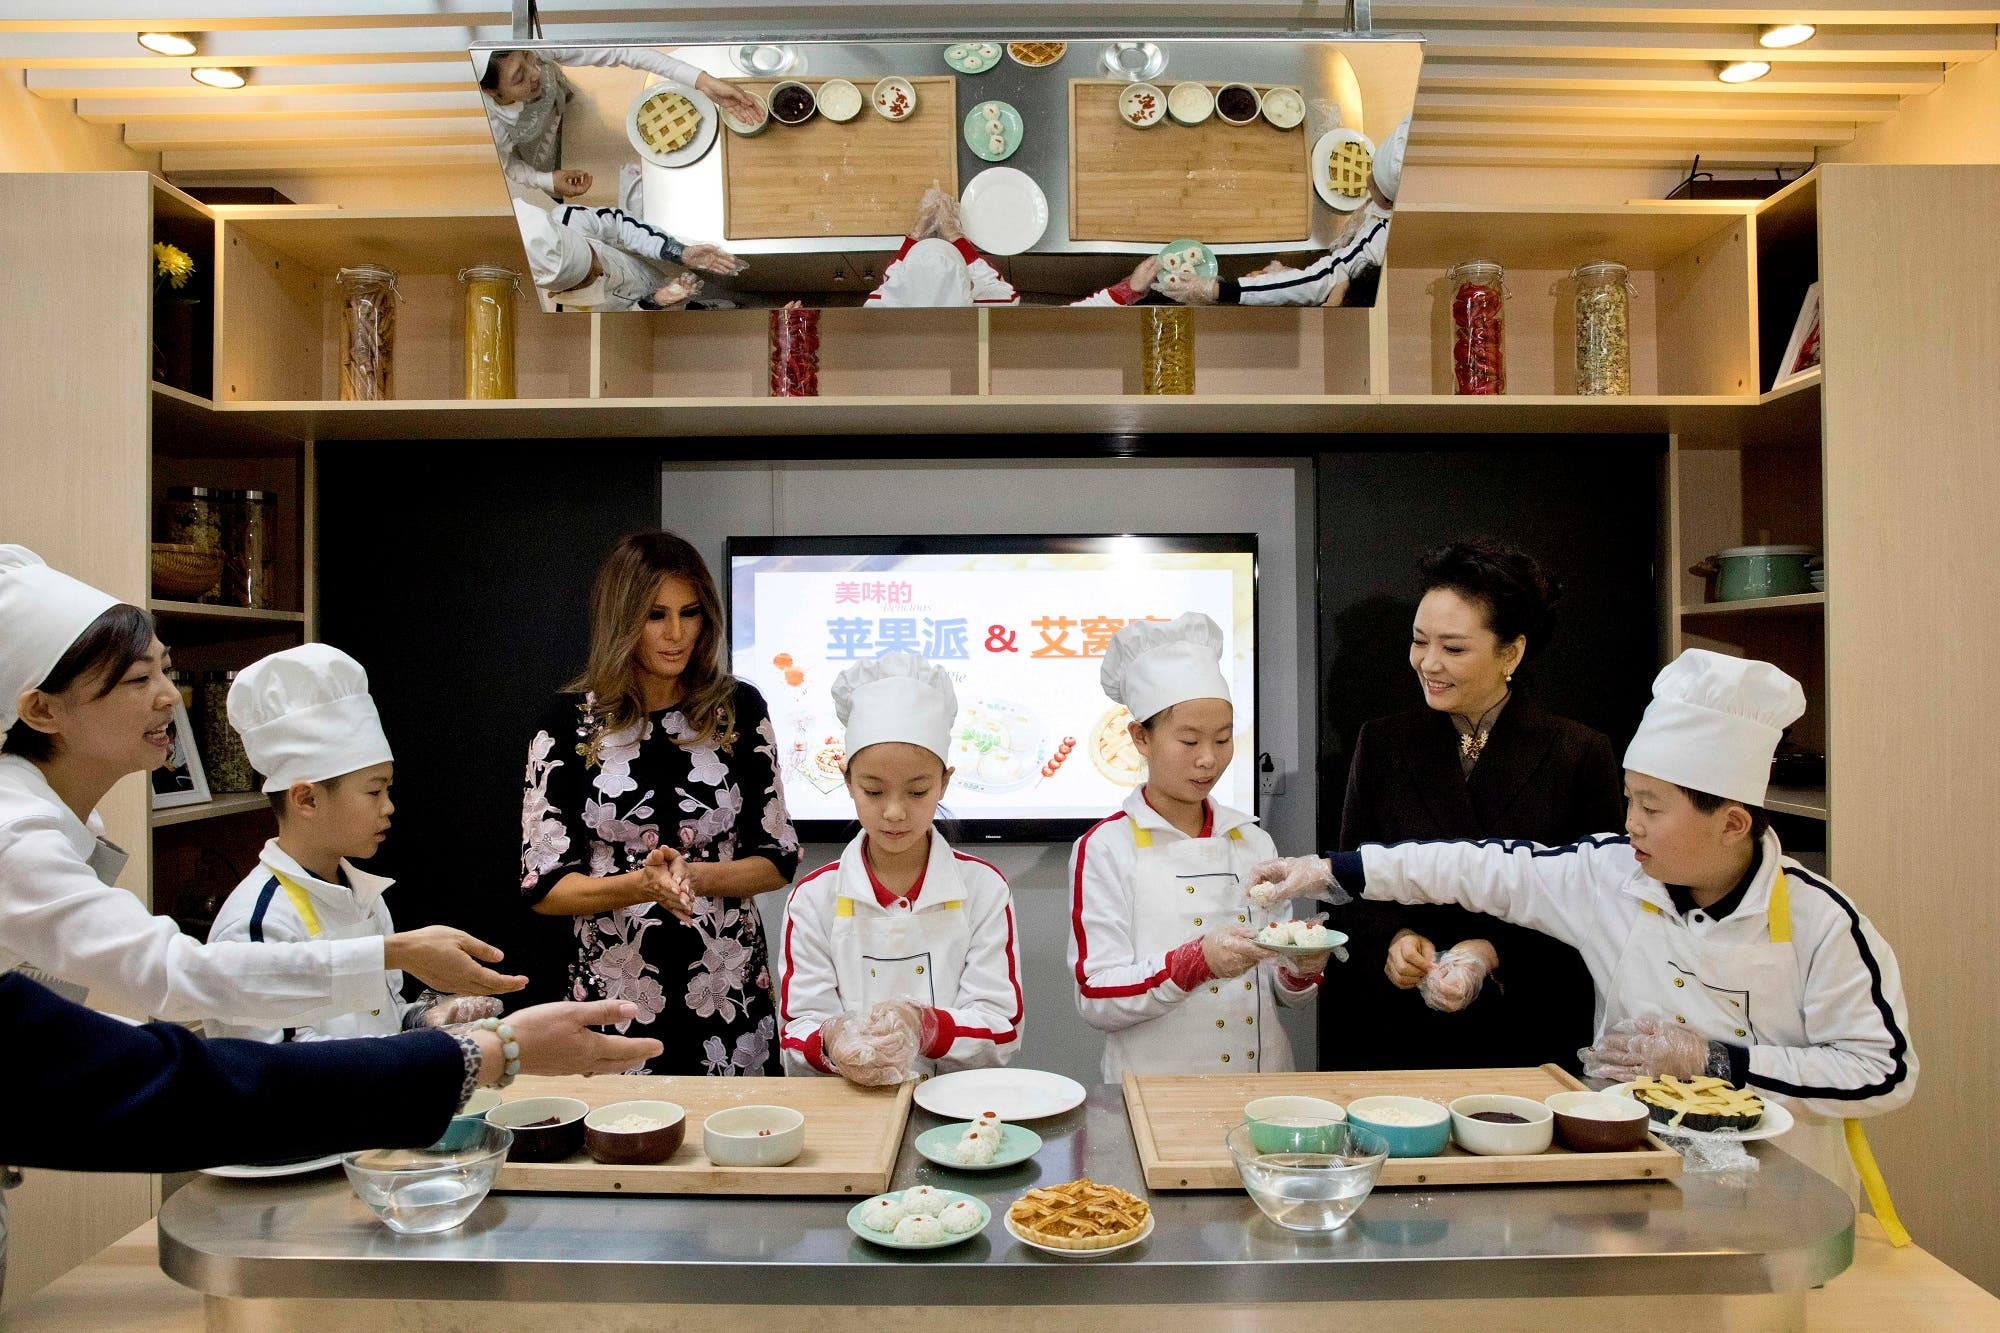 US First Lady Melania Trump and China's First Lady Peng Liyuan (2nd R) take part in a cooking class in Beijing on November 9, 2017. (AFP)